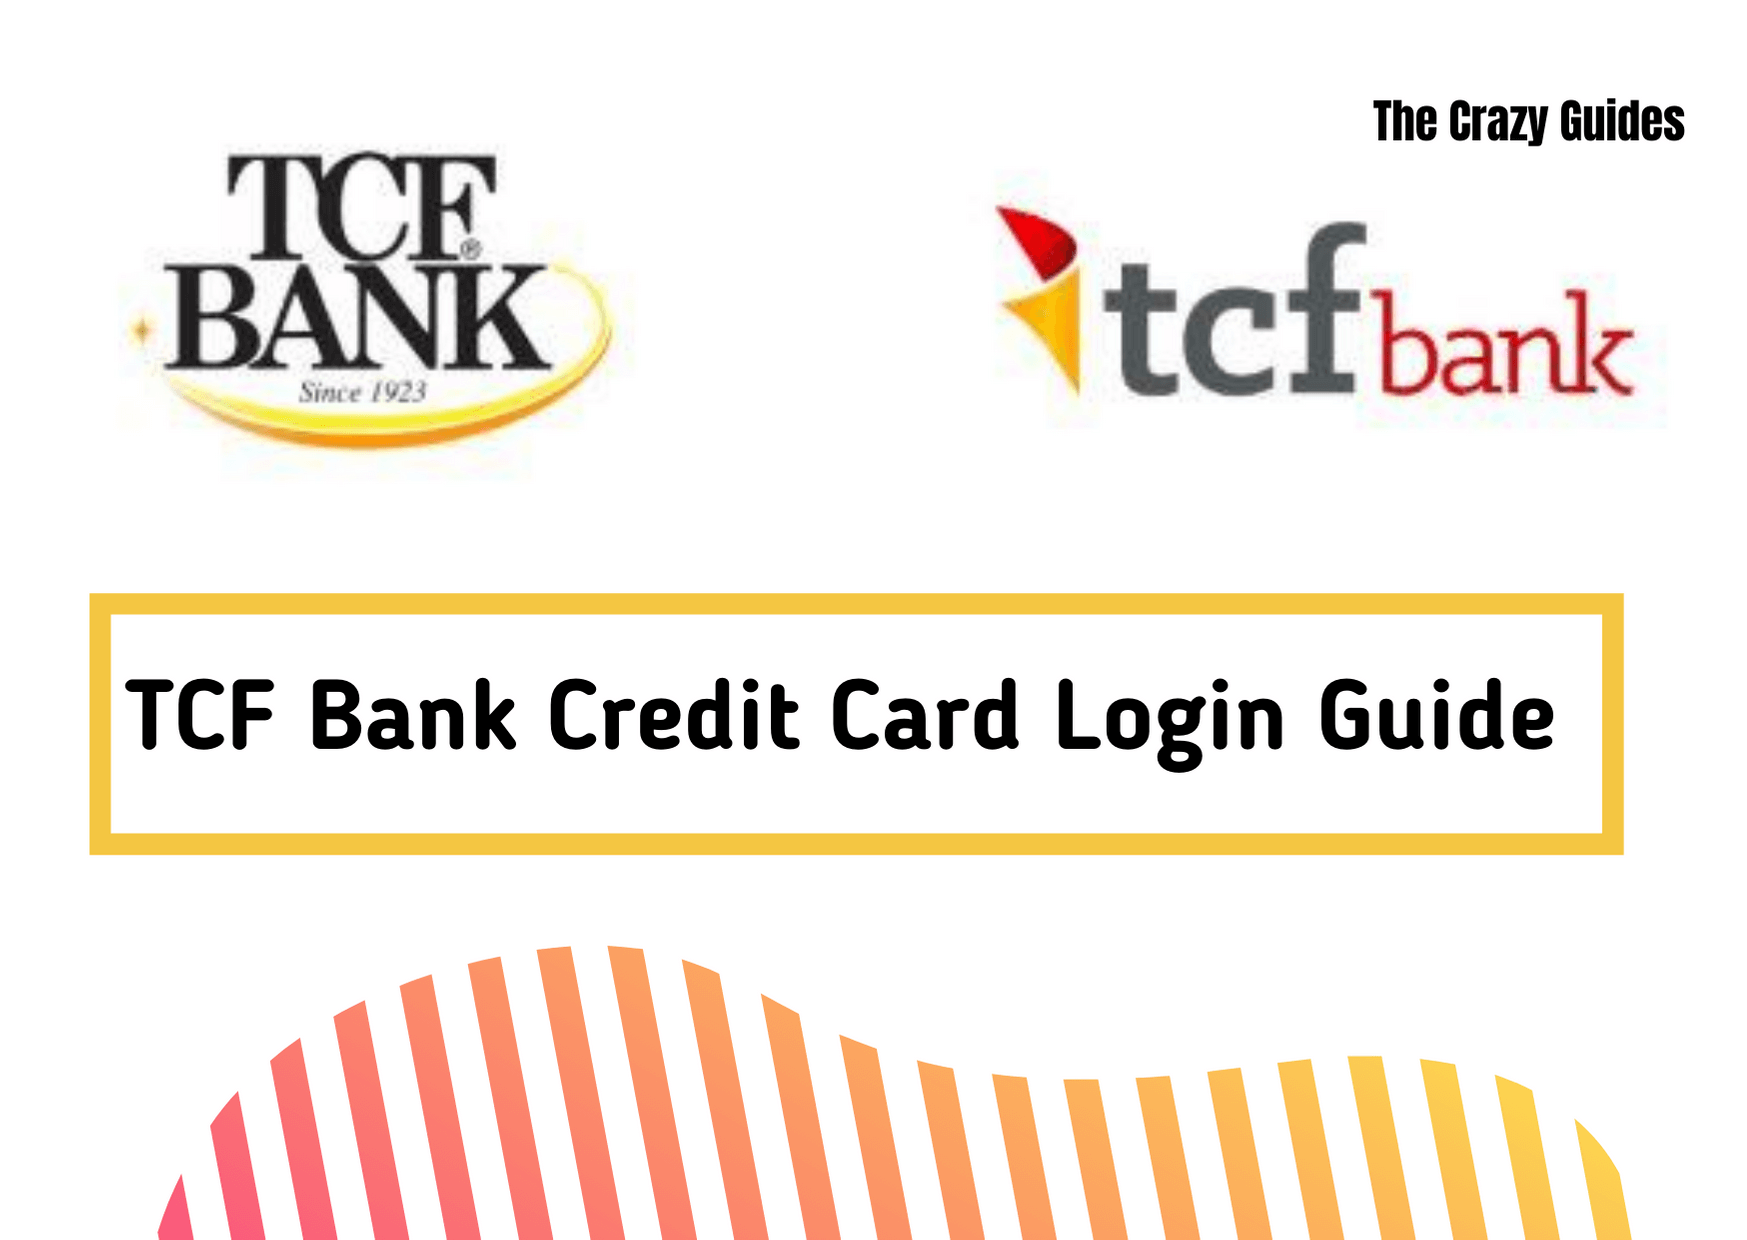 TCF bank credit card login